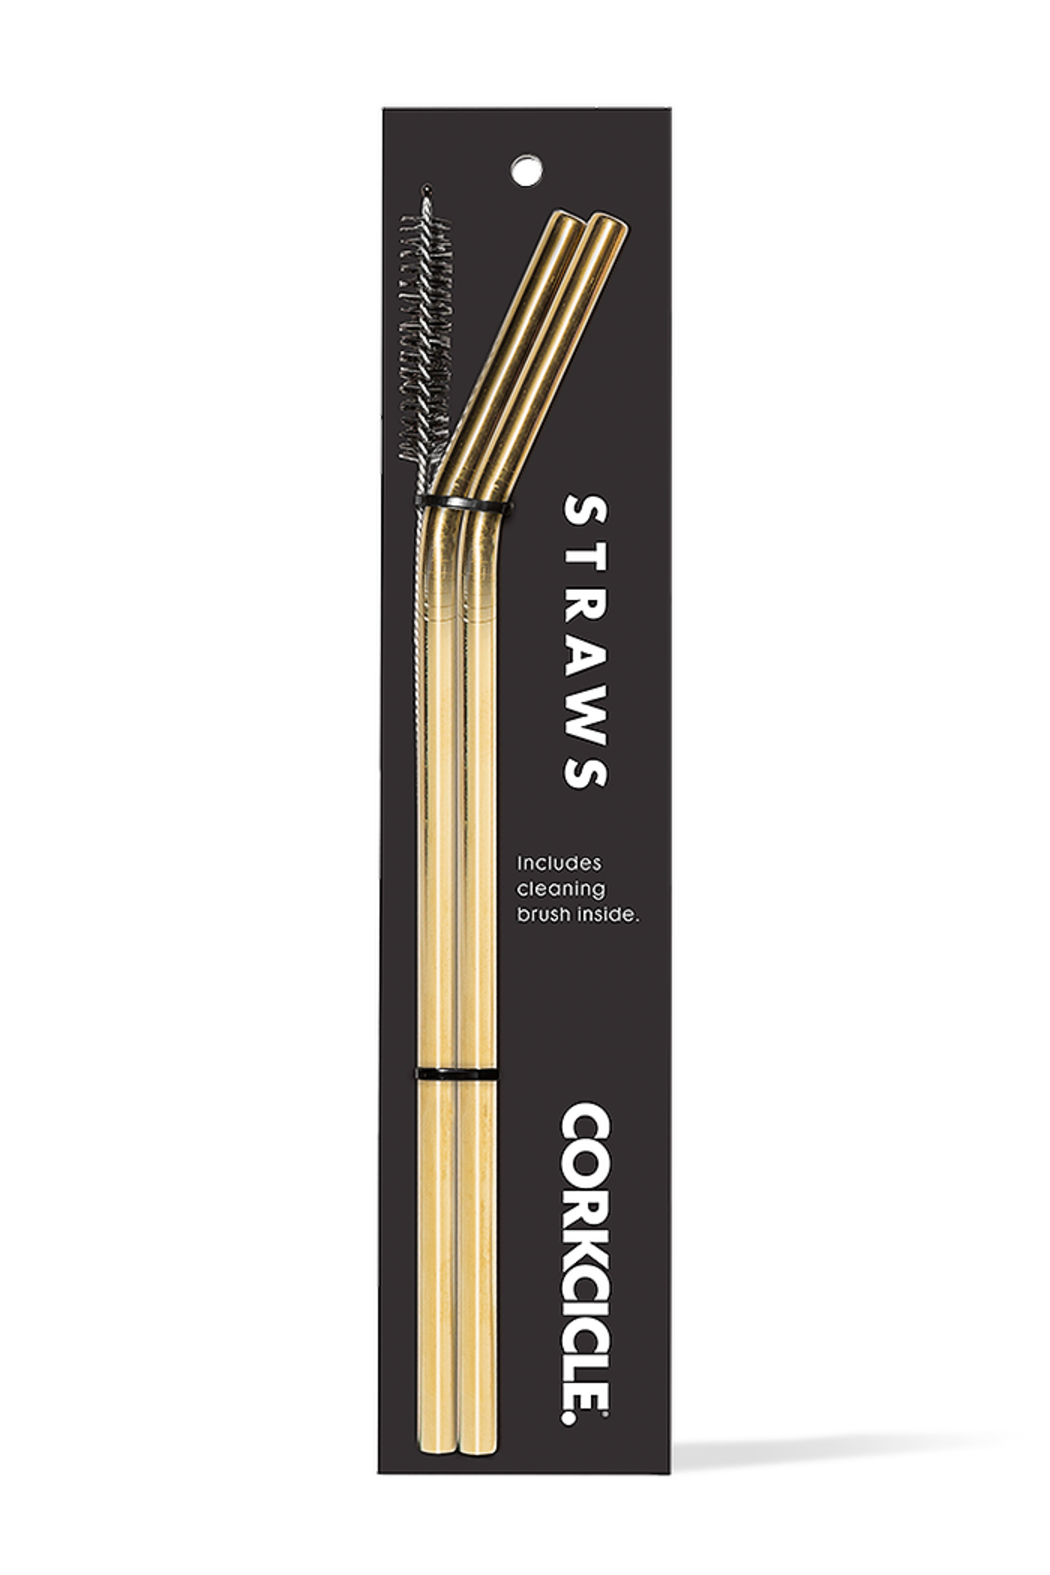 d8869260a Corkcicle GOLD METAL TUMBLER STRAW - 2 PACK from Louisiana by The ...